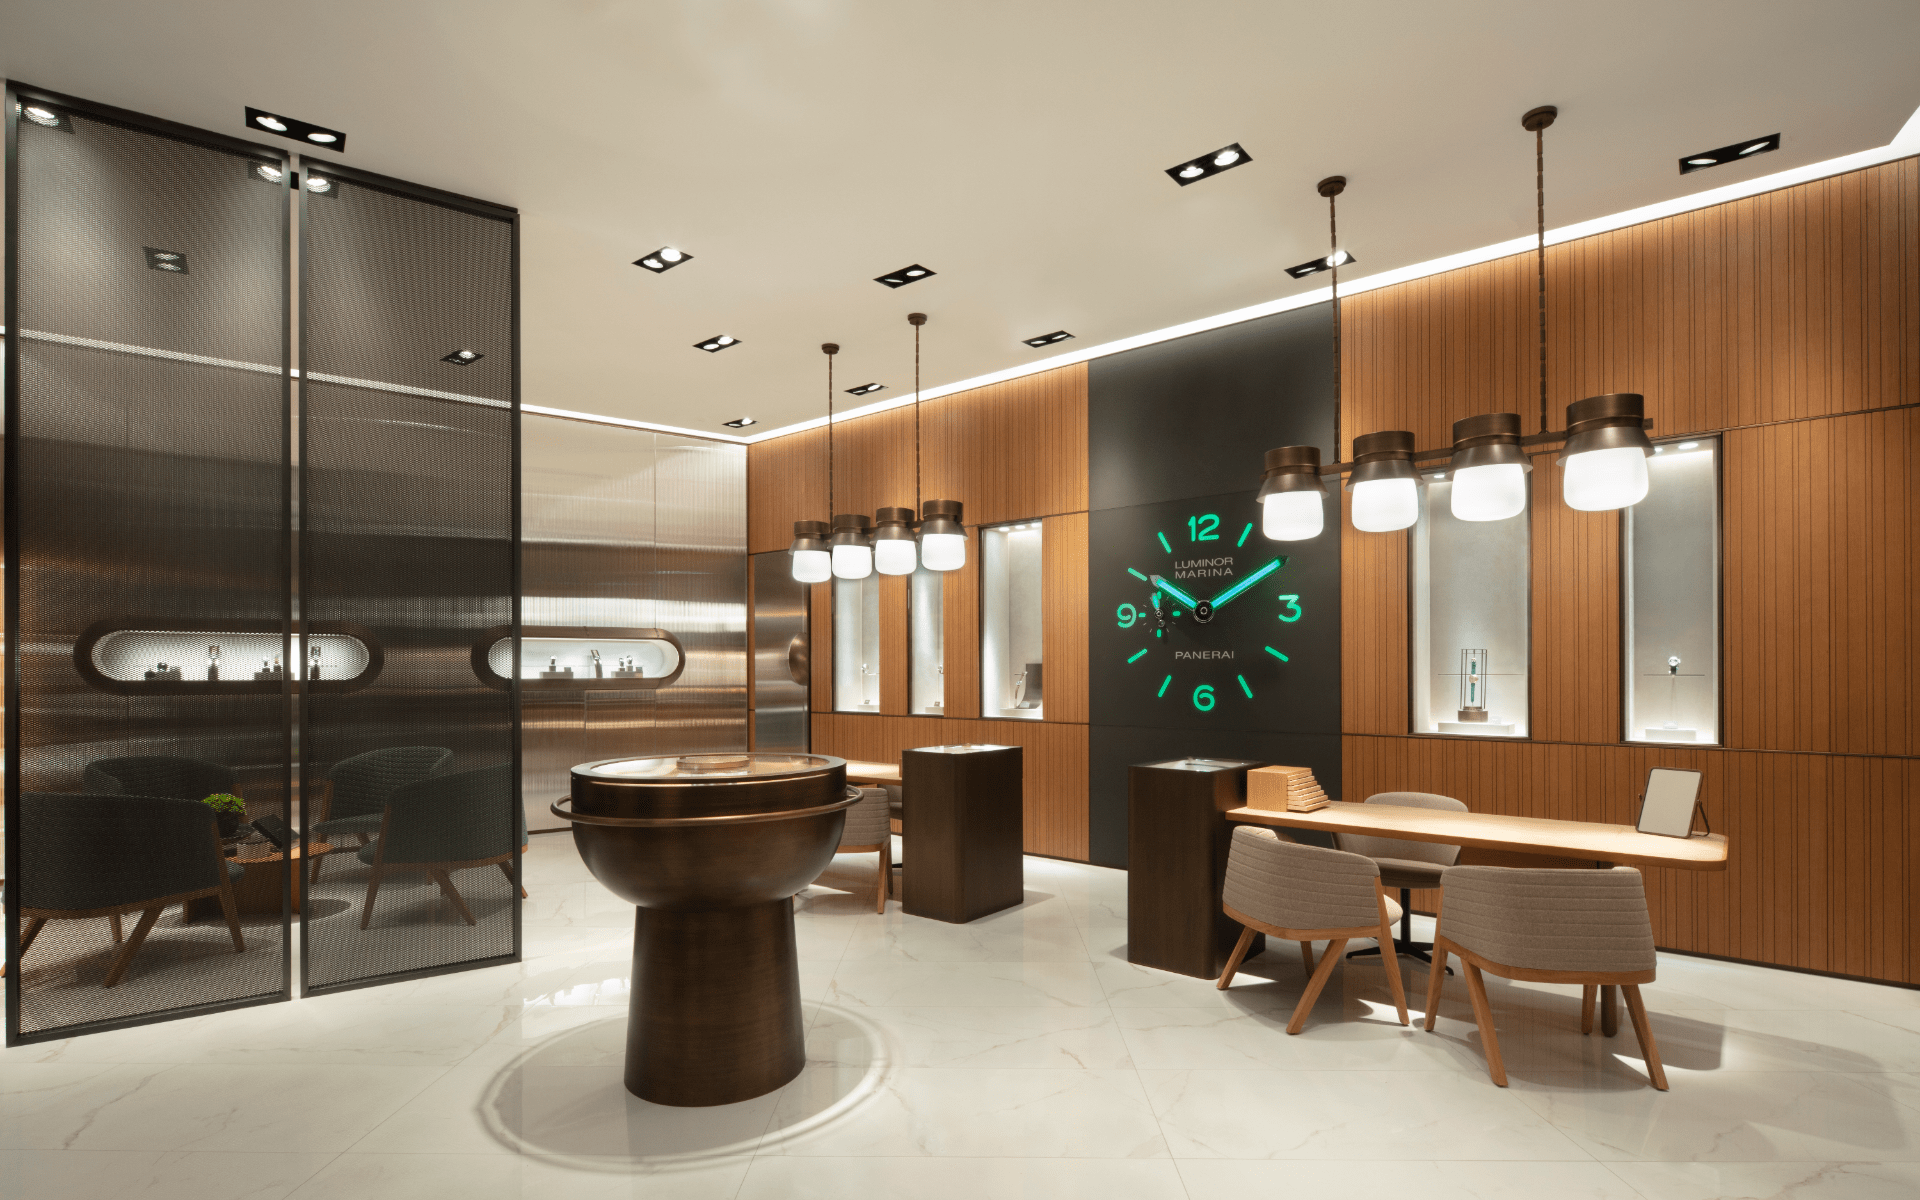 The marine dial and illuminated wall clock add a unique character to the space